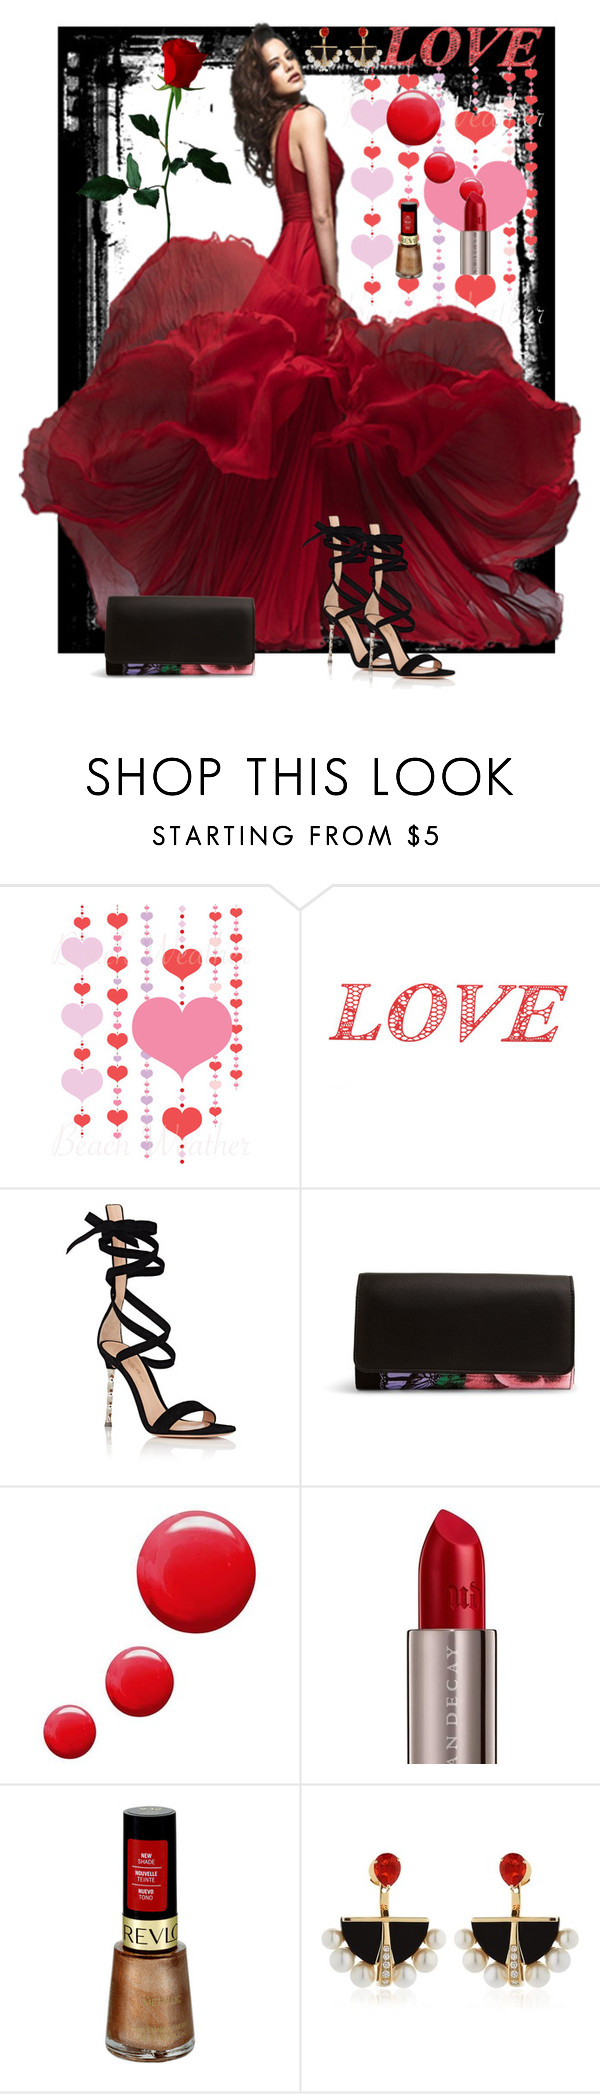 """Love"" by lkriss ❤ liked on Polyvore featuring WALL, Gianvito Rossi, Vera Bradley, Topshop, Urban Decay, Revlon, Lalique, DateNight, love and valentinesday"